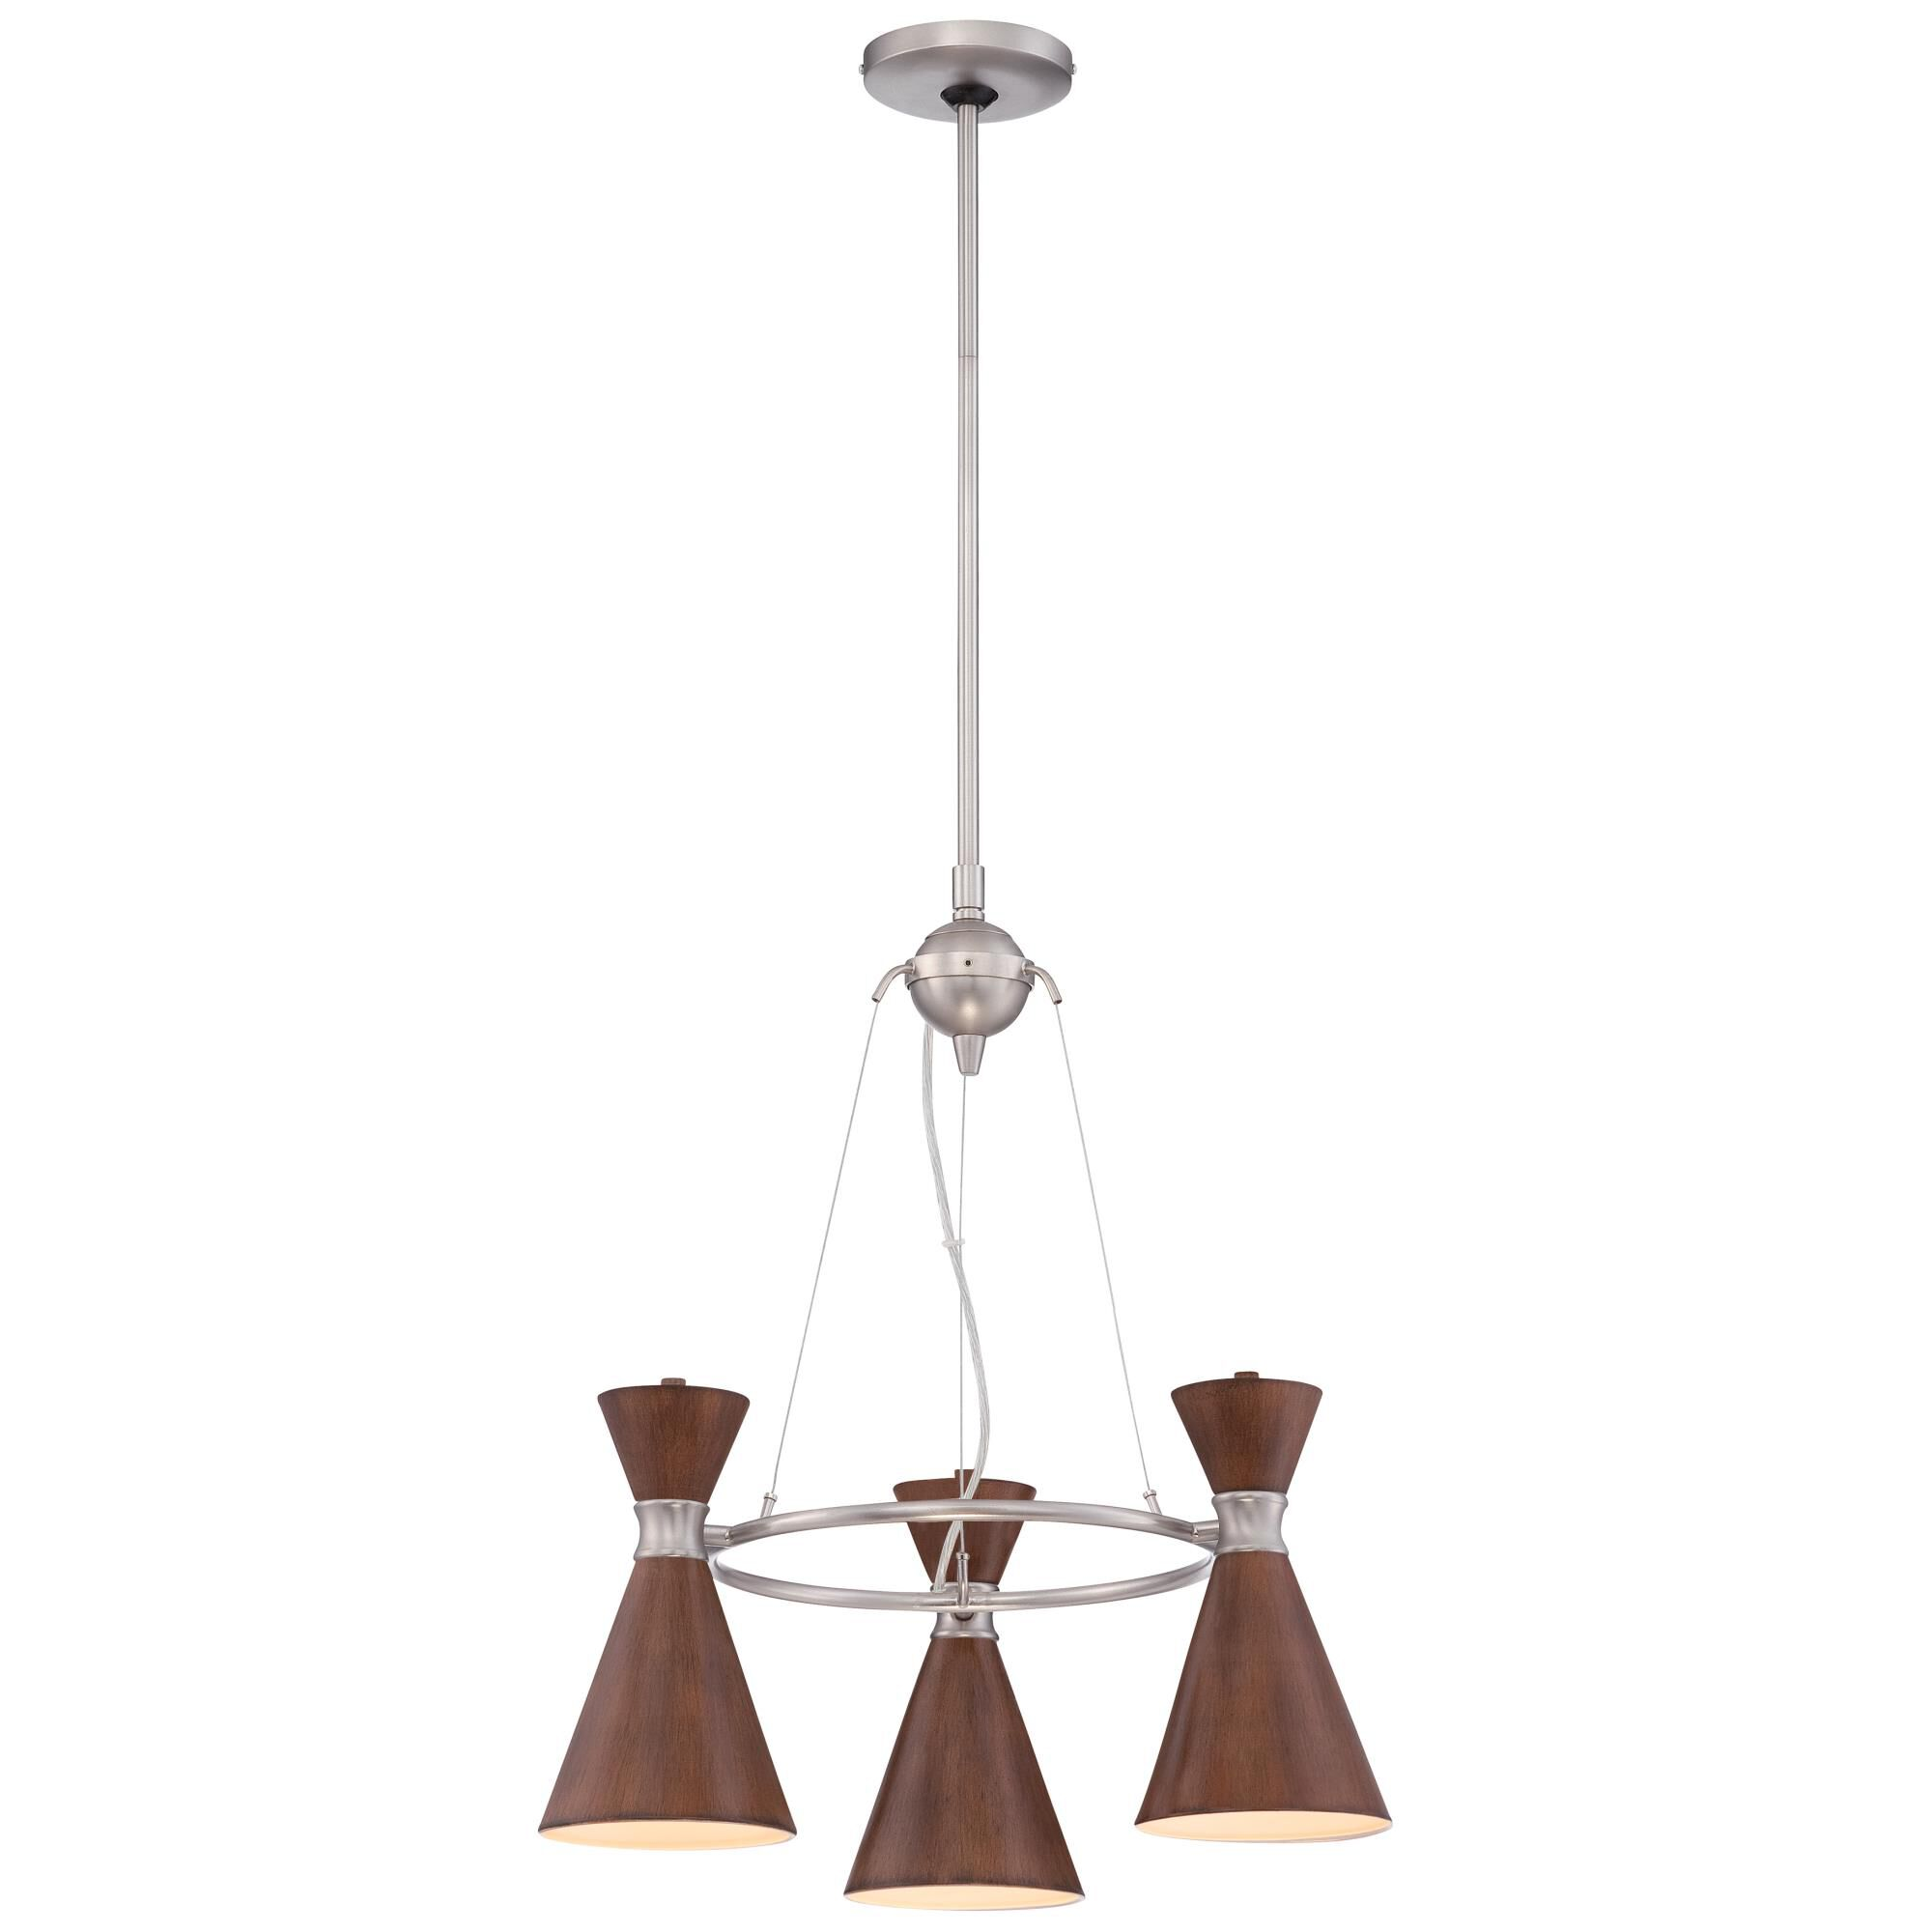 Kovacs Conic 20 Inch 3 Light Mini Chandelier Conic - P1823-651 - Transitional